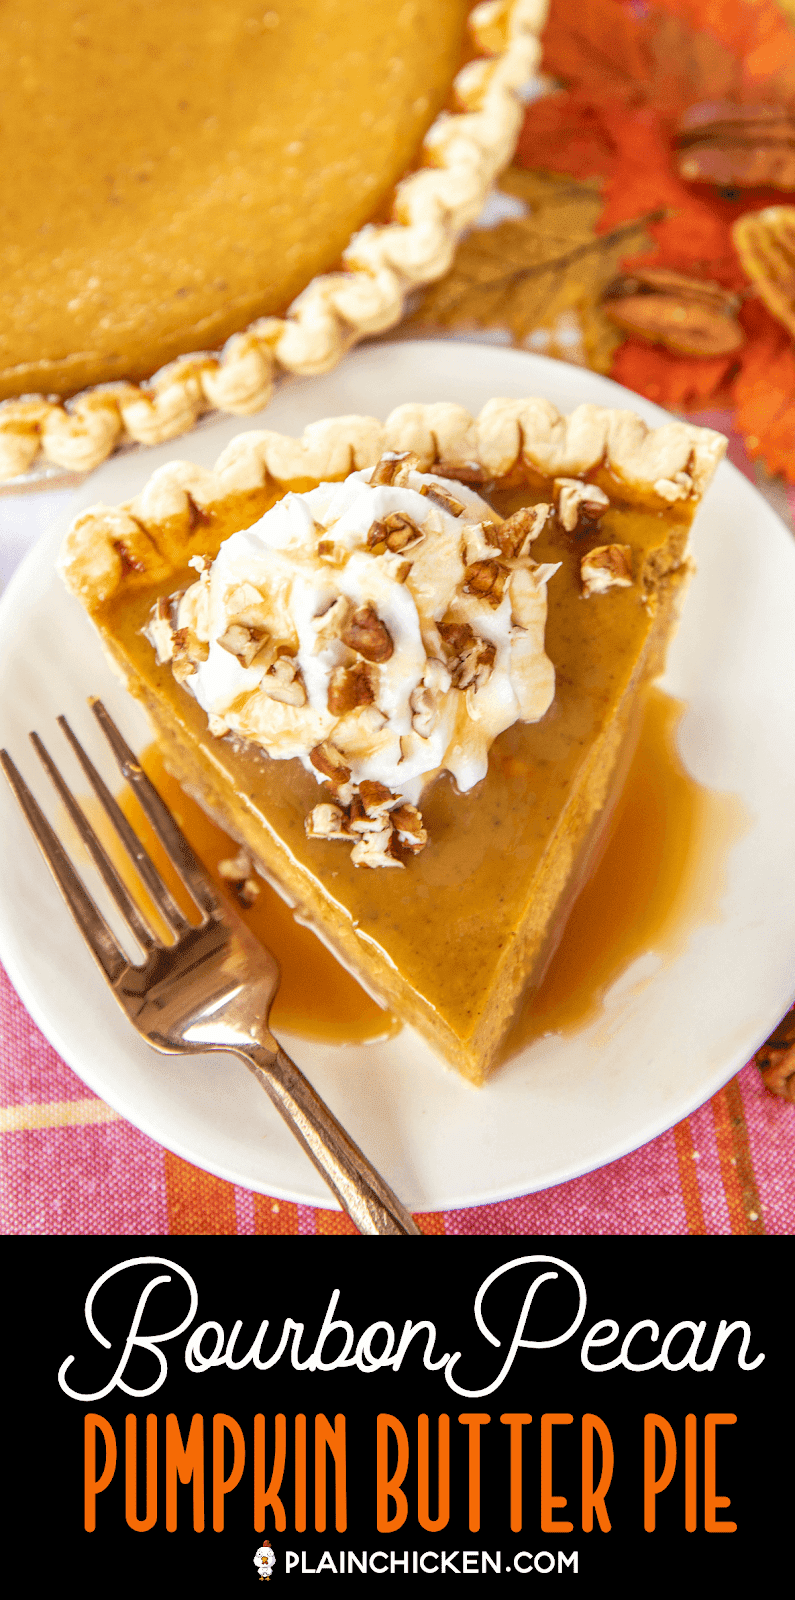 slice of pumpkin pie on a plate